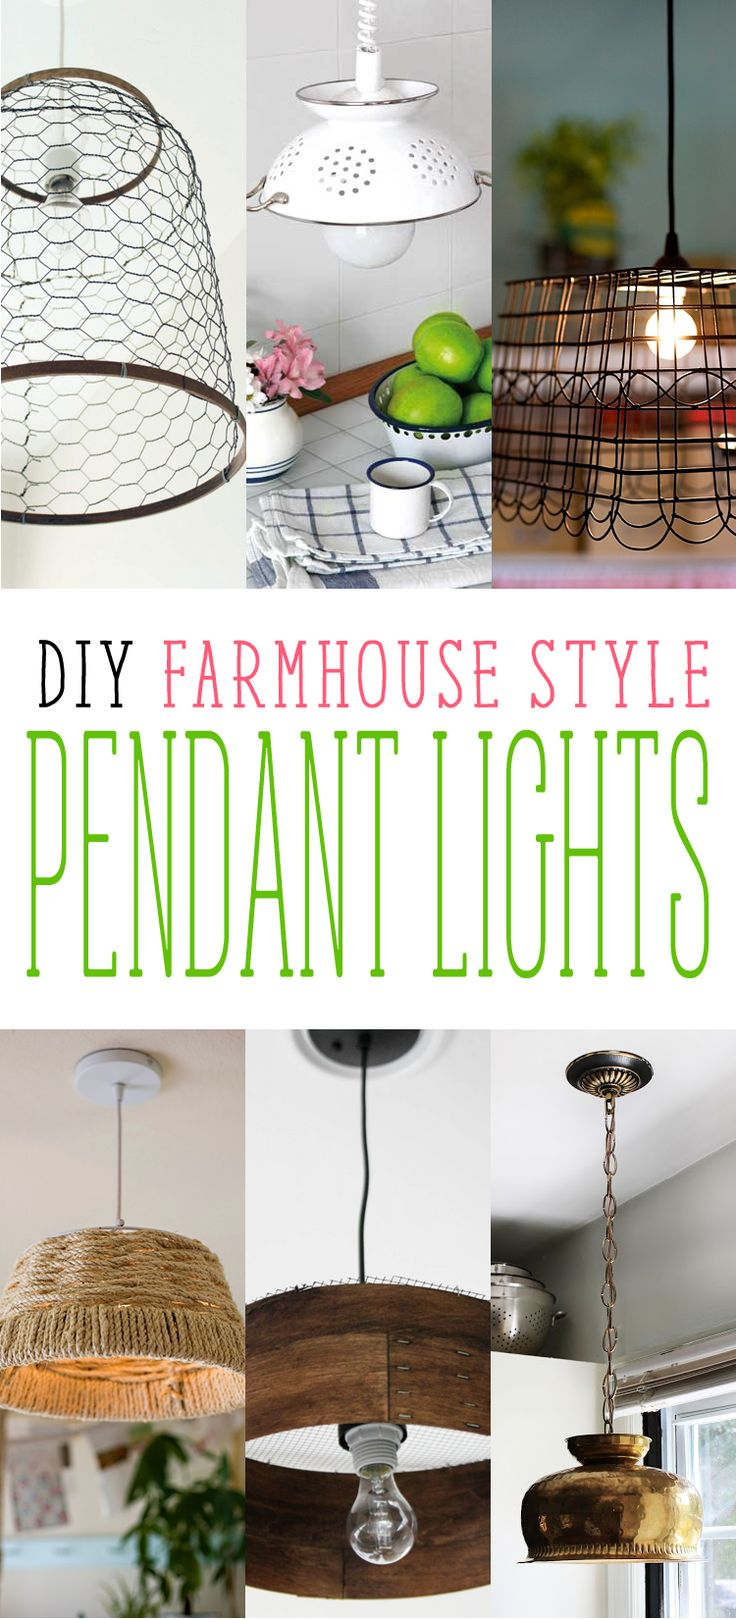 DIY Farmhouse Style Pendant Lights - The Cottage Market